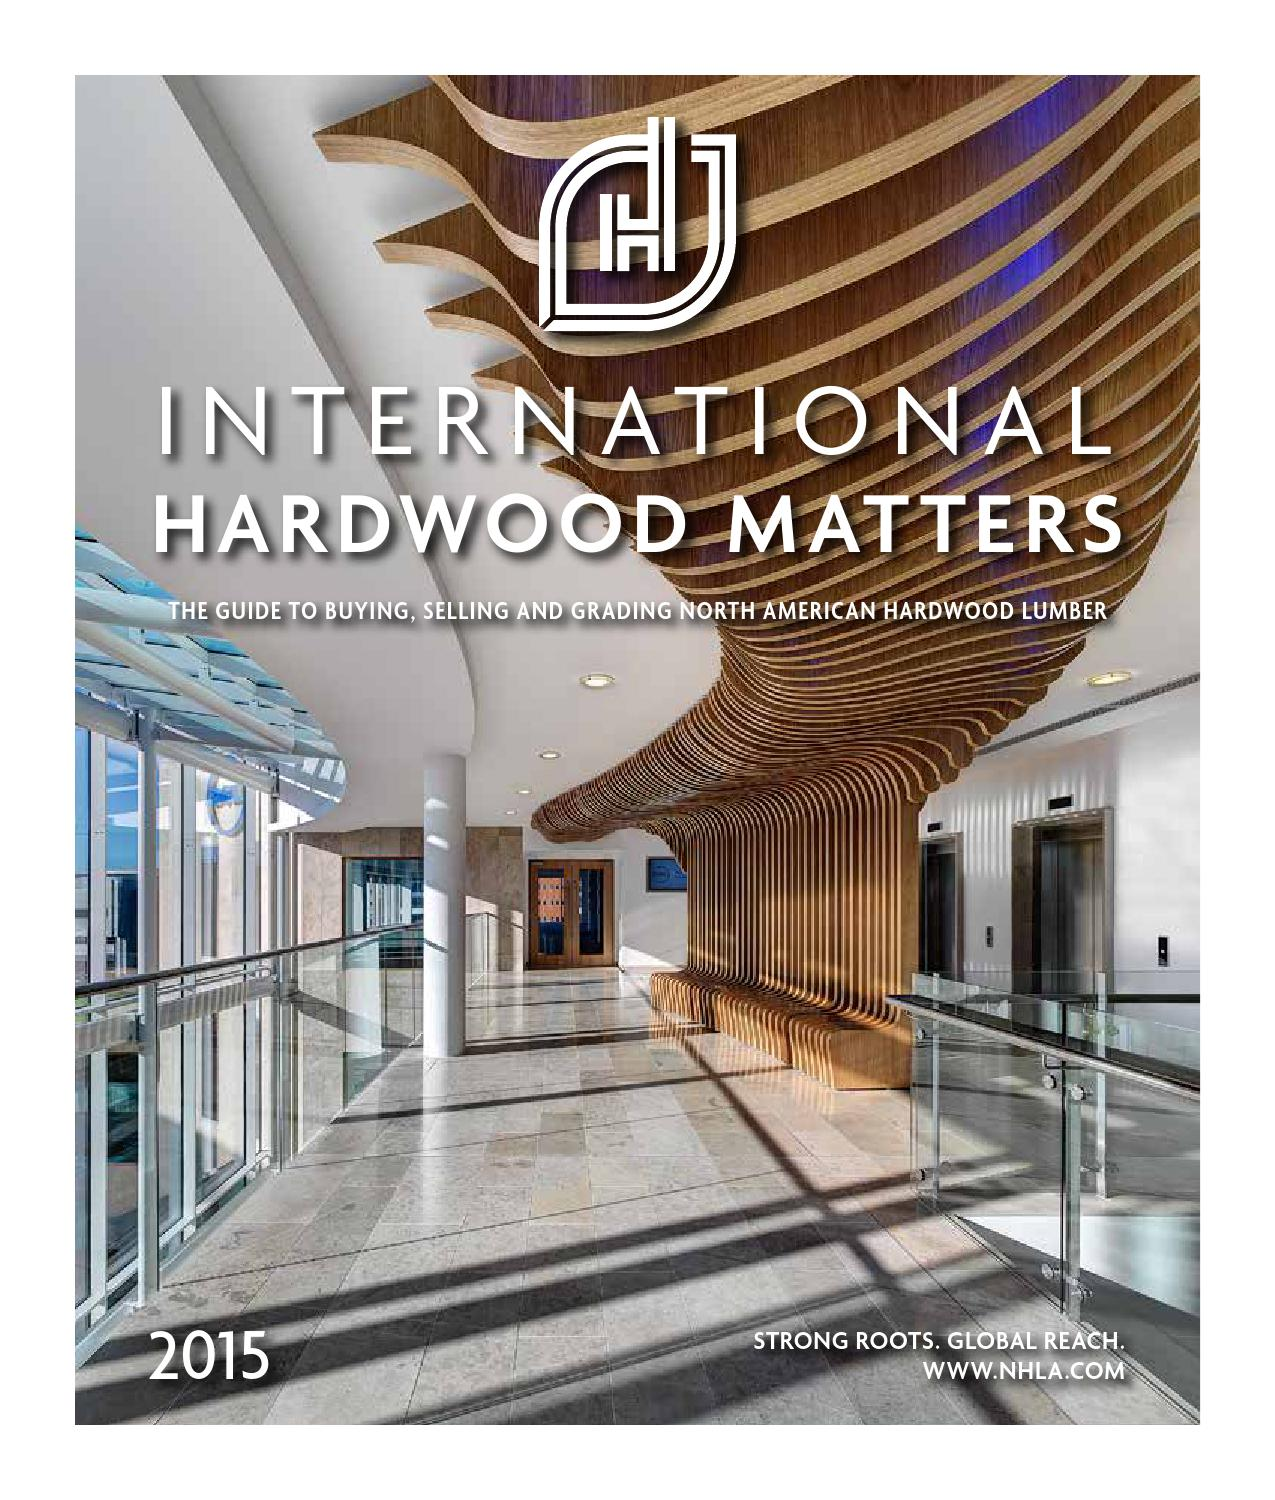 International hardwood matters by national